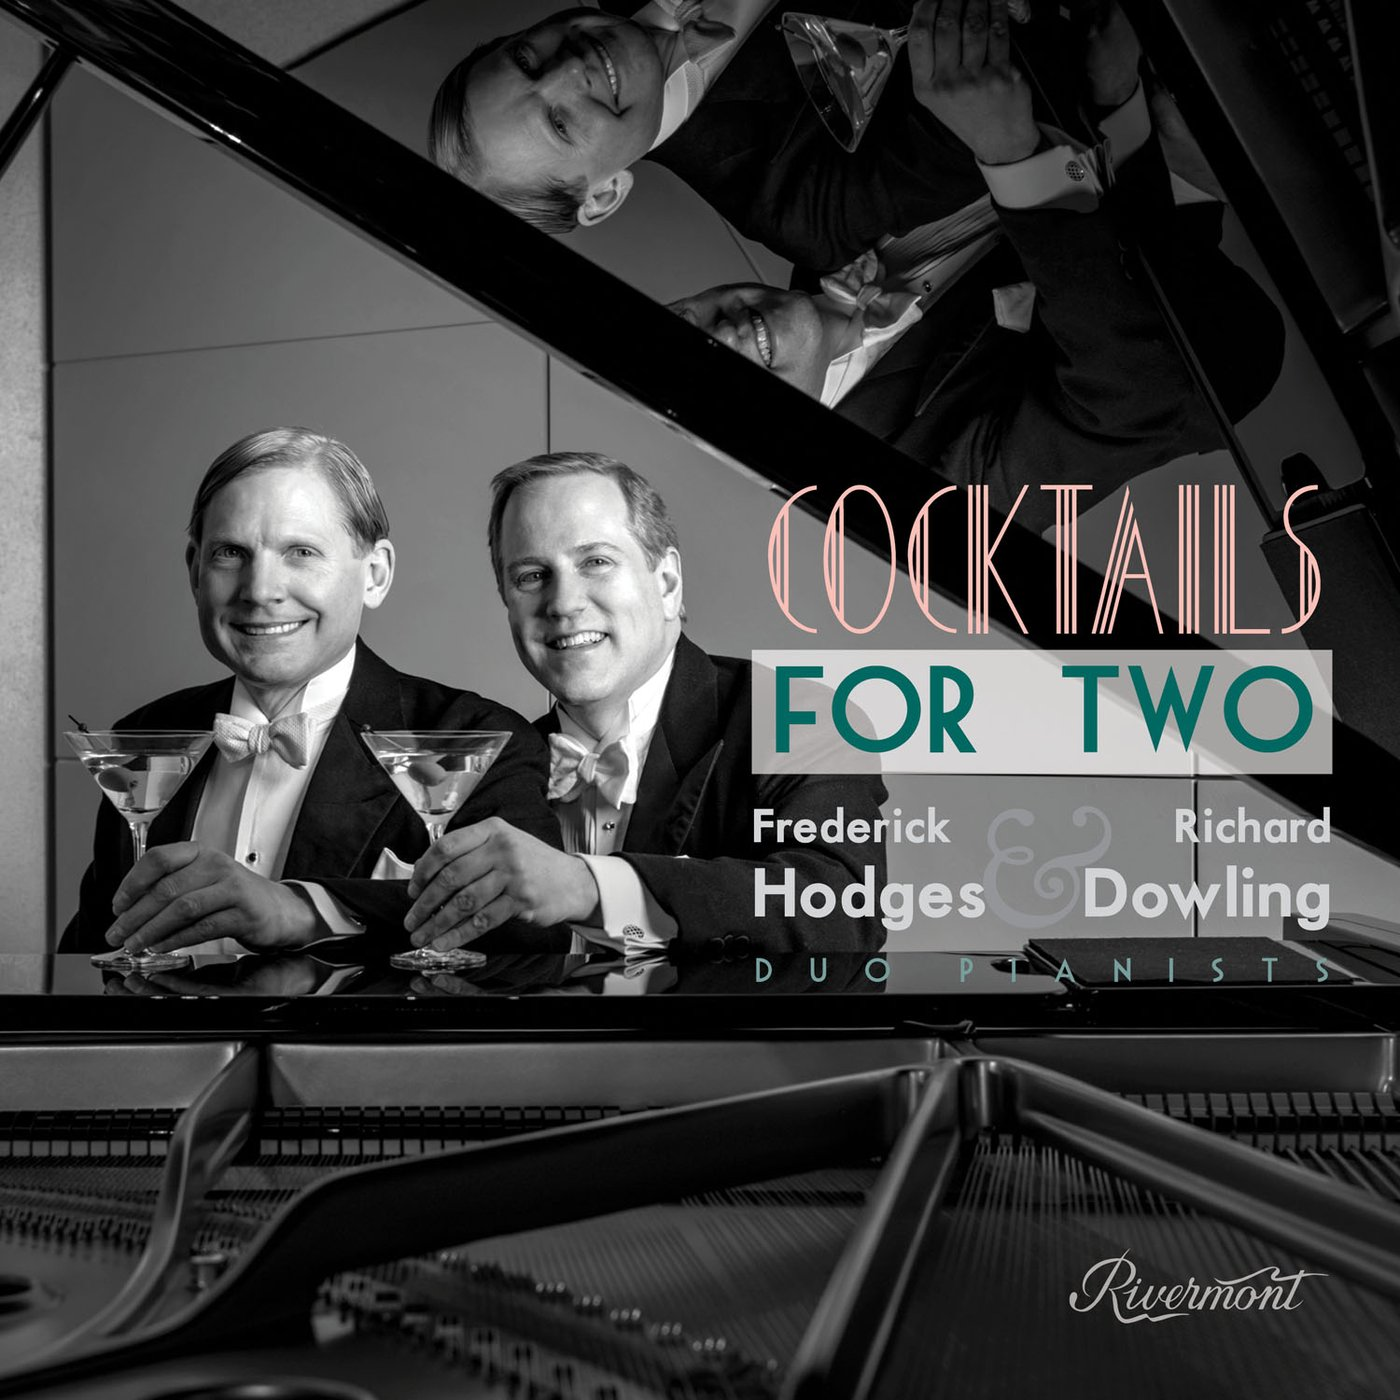 FREDERICK HODGES - Frederick Hodges and Richard Dowling : Cocktails For Two cover